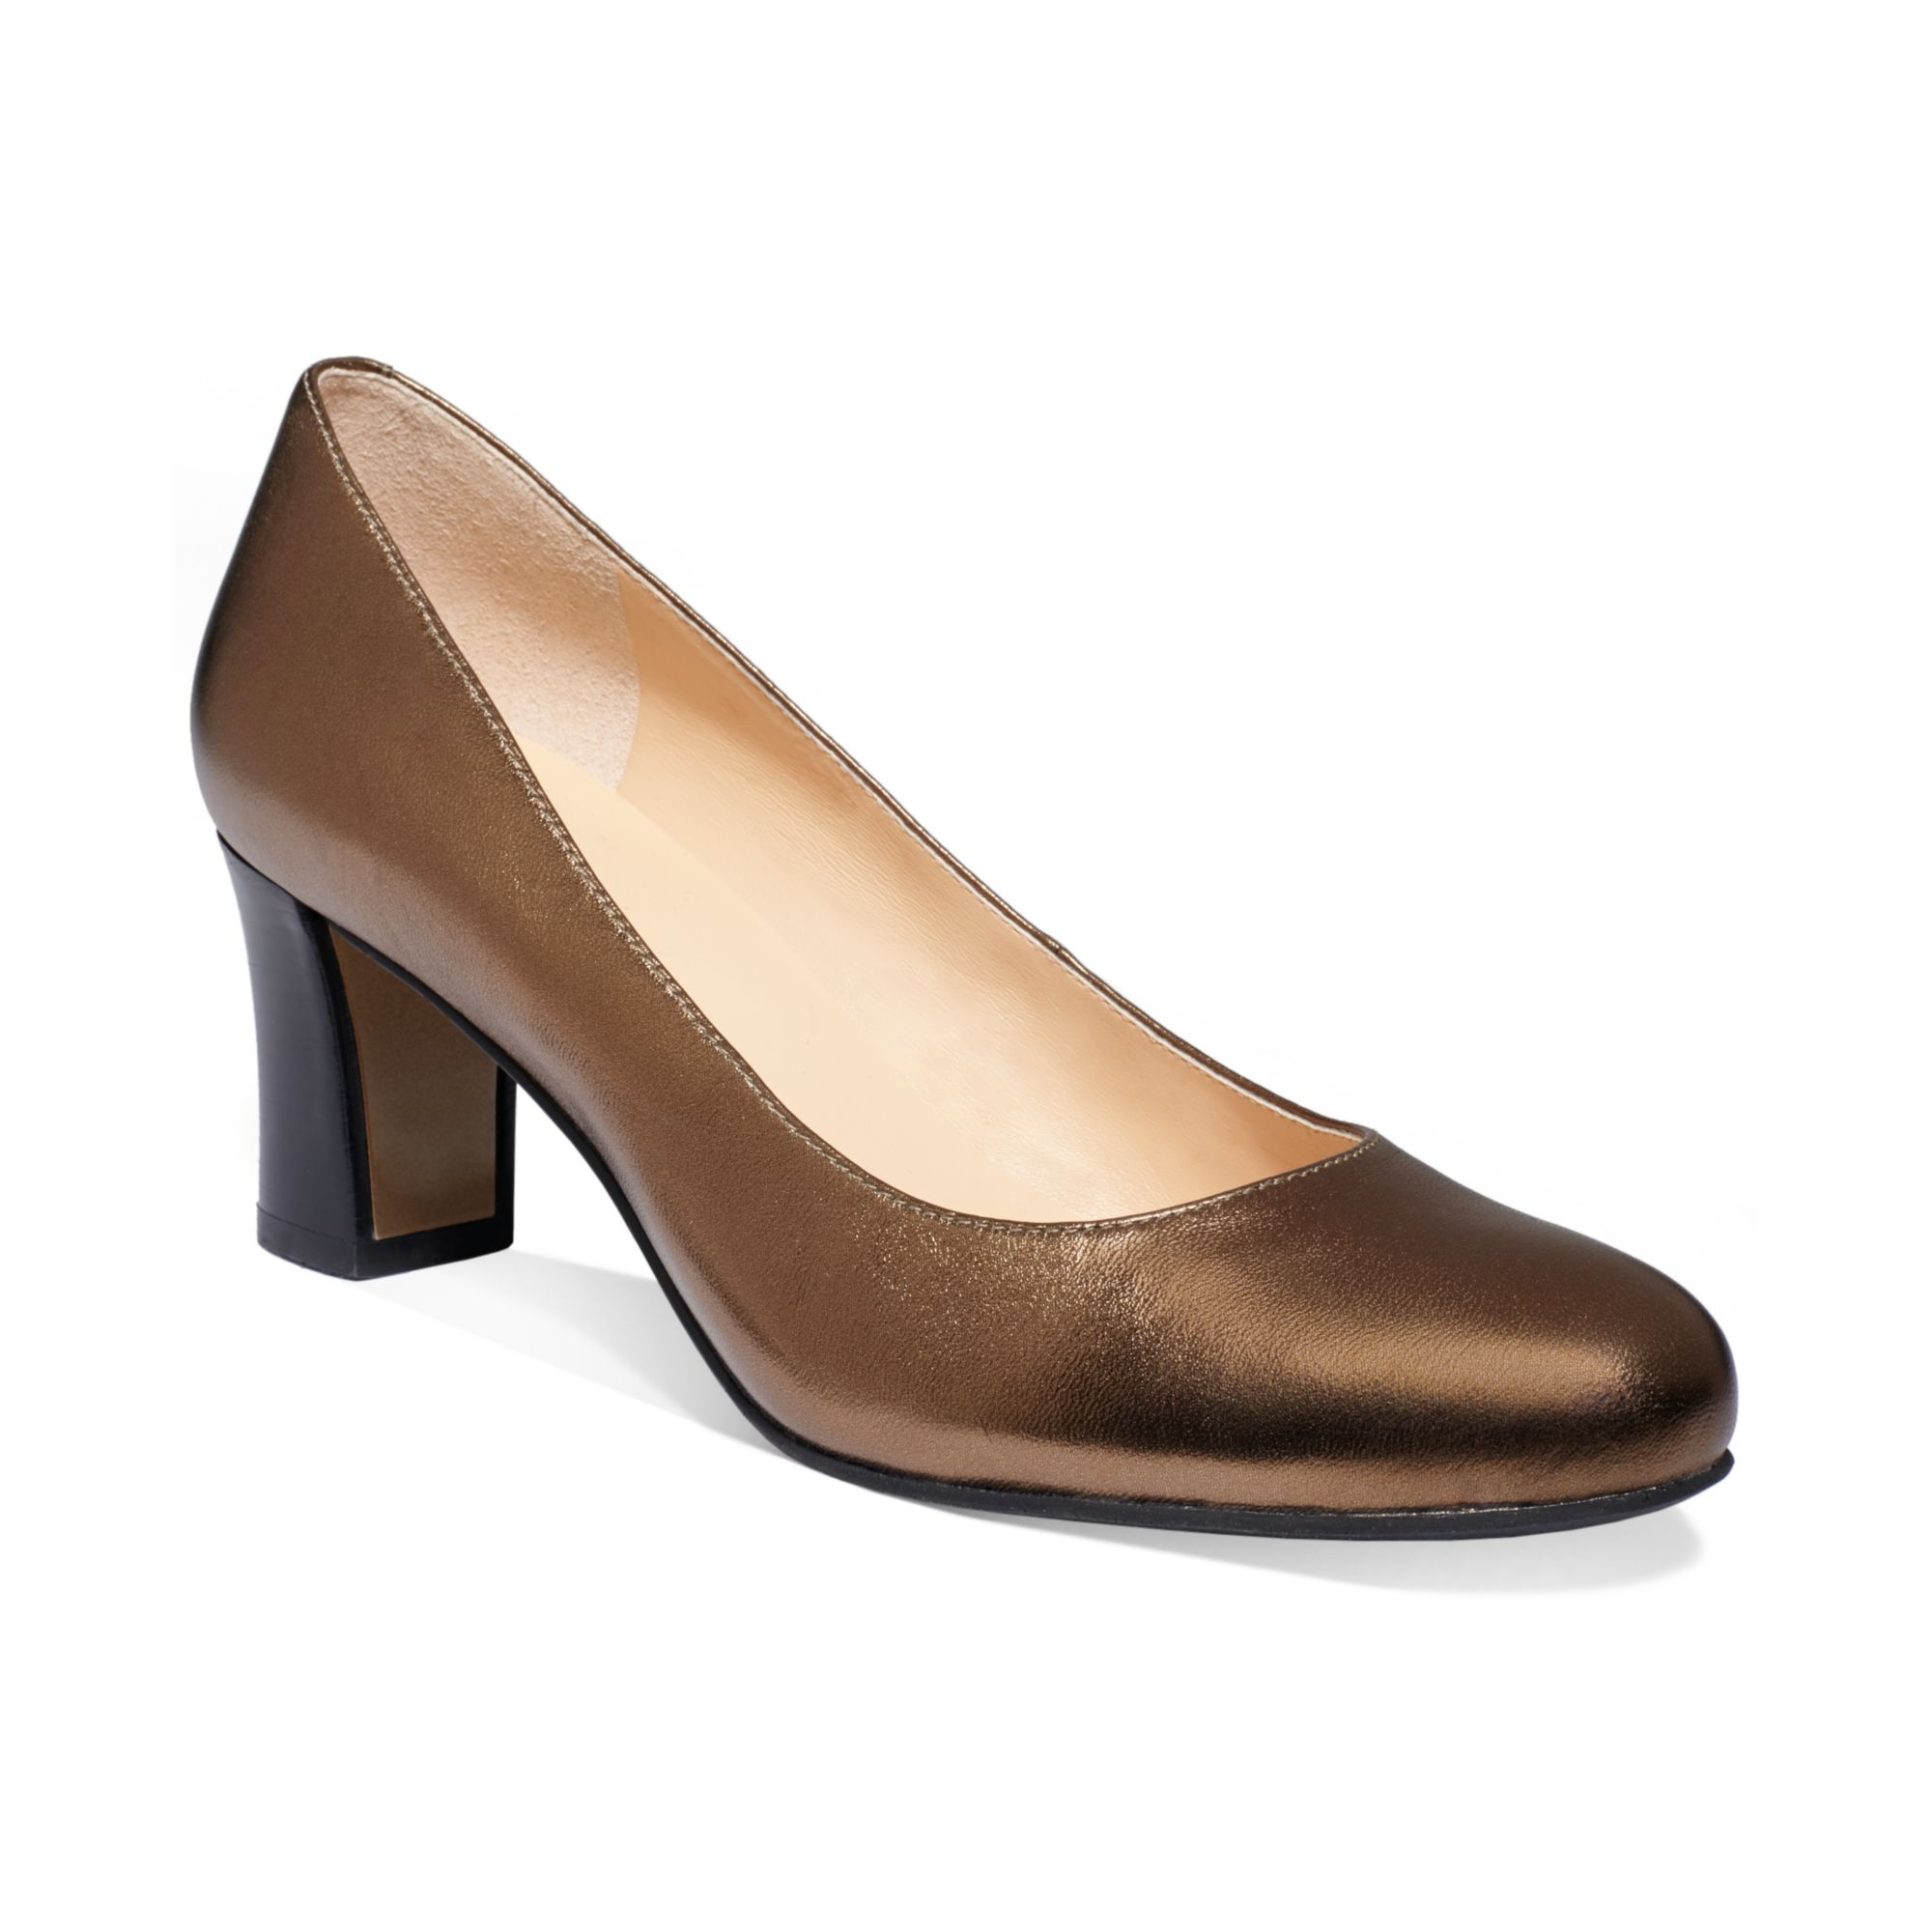 Macy S Cole Haan Womens Shoes